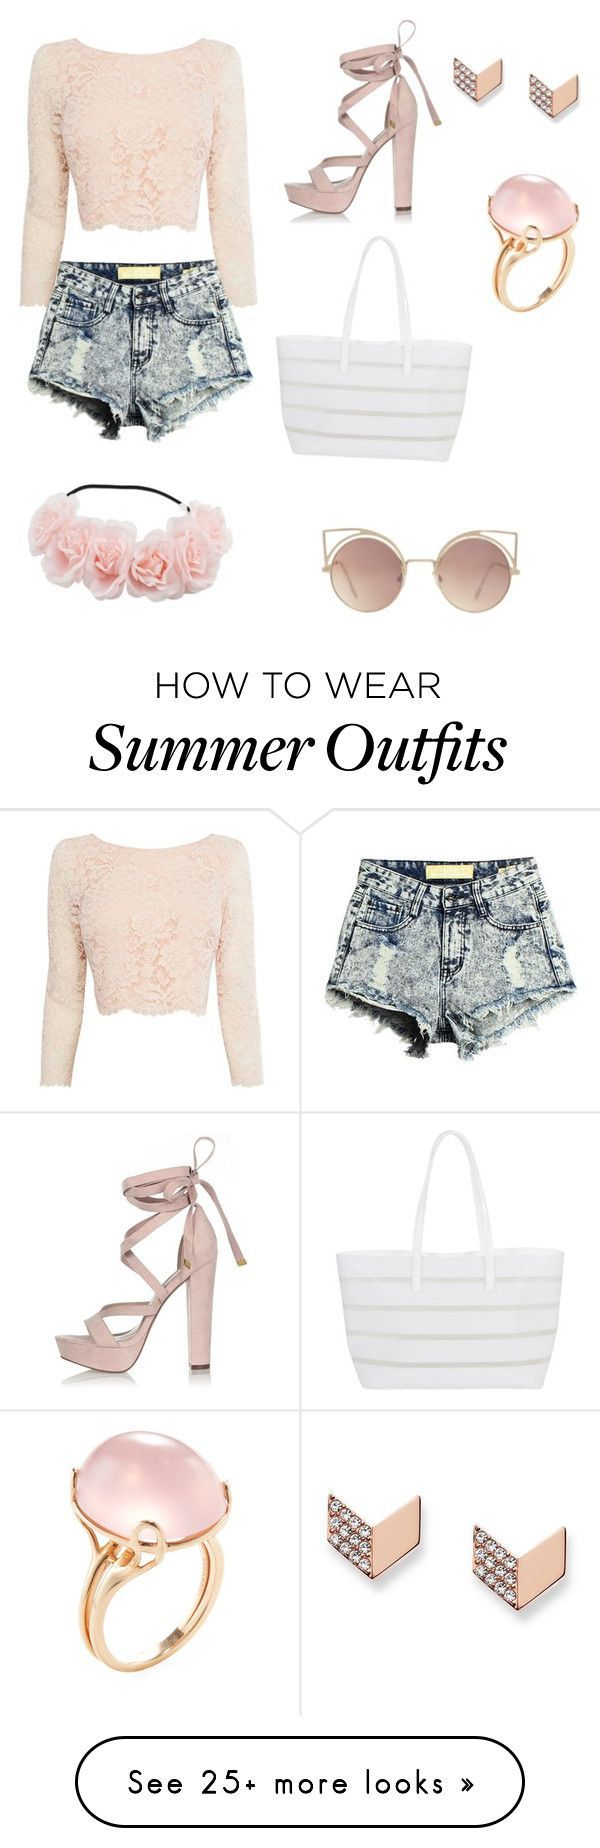 """Cute Summer Outfit"" by kaylafayesmith on Polyvore featuring Coast, River Island, BUCO, MANGO, FOSSIL and Goshwara - black button down short sleeve shirt, white shirt for mens, men white shirt *sponsored https://www.pinterest.com/shirts_shirt/ https://www.pinterest.com/explore/shirt/ https://www.pinterest.com/shirts_shirt/band-shirts/ http://www.express.com/clothing/men/casual-shirts/cat/cat2060009"